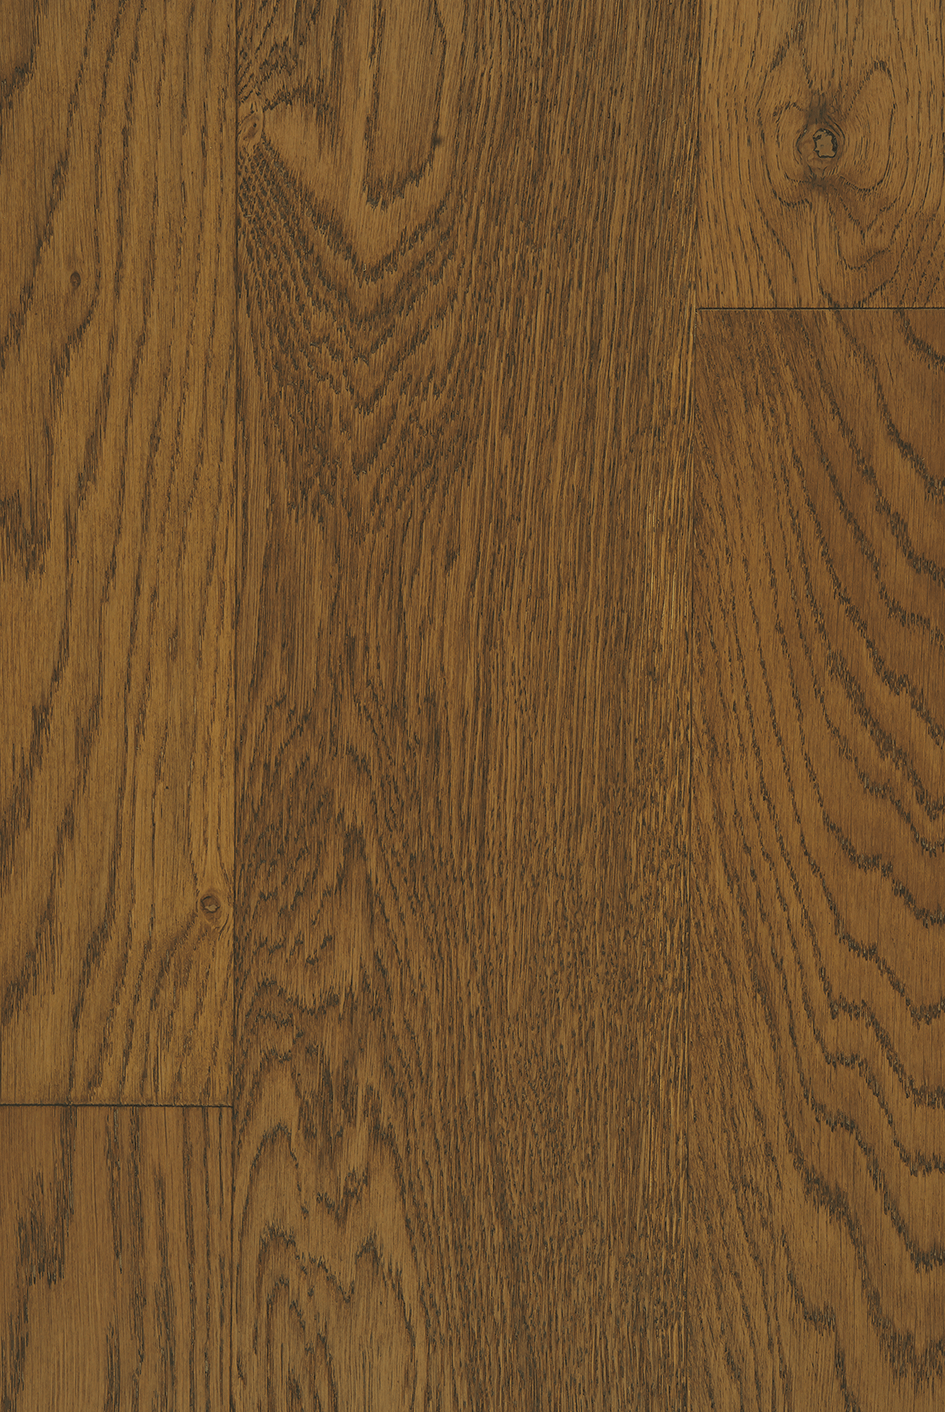 Tuscan Forte Barley Oak Handscraped & Lacquered TF514 Engineered Wood Flooring